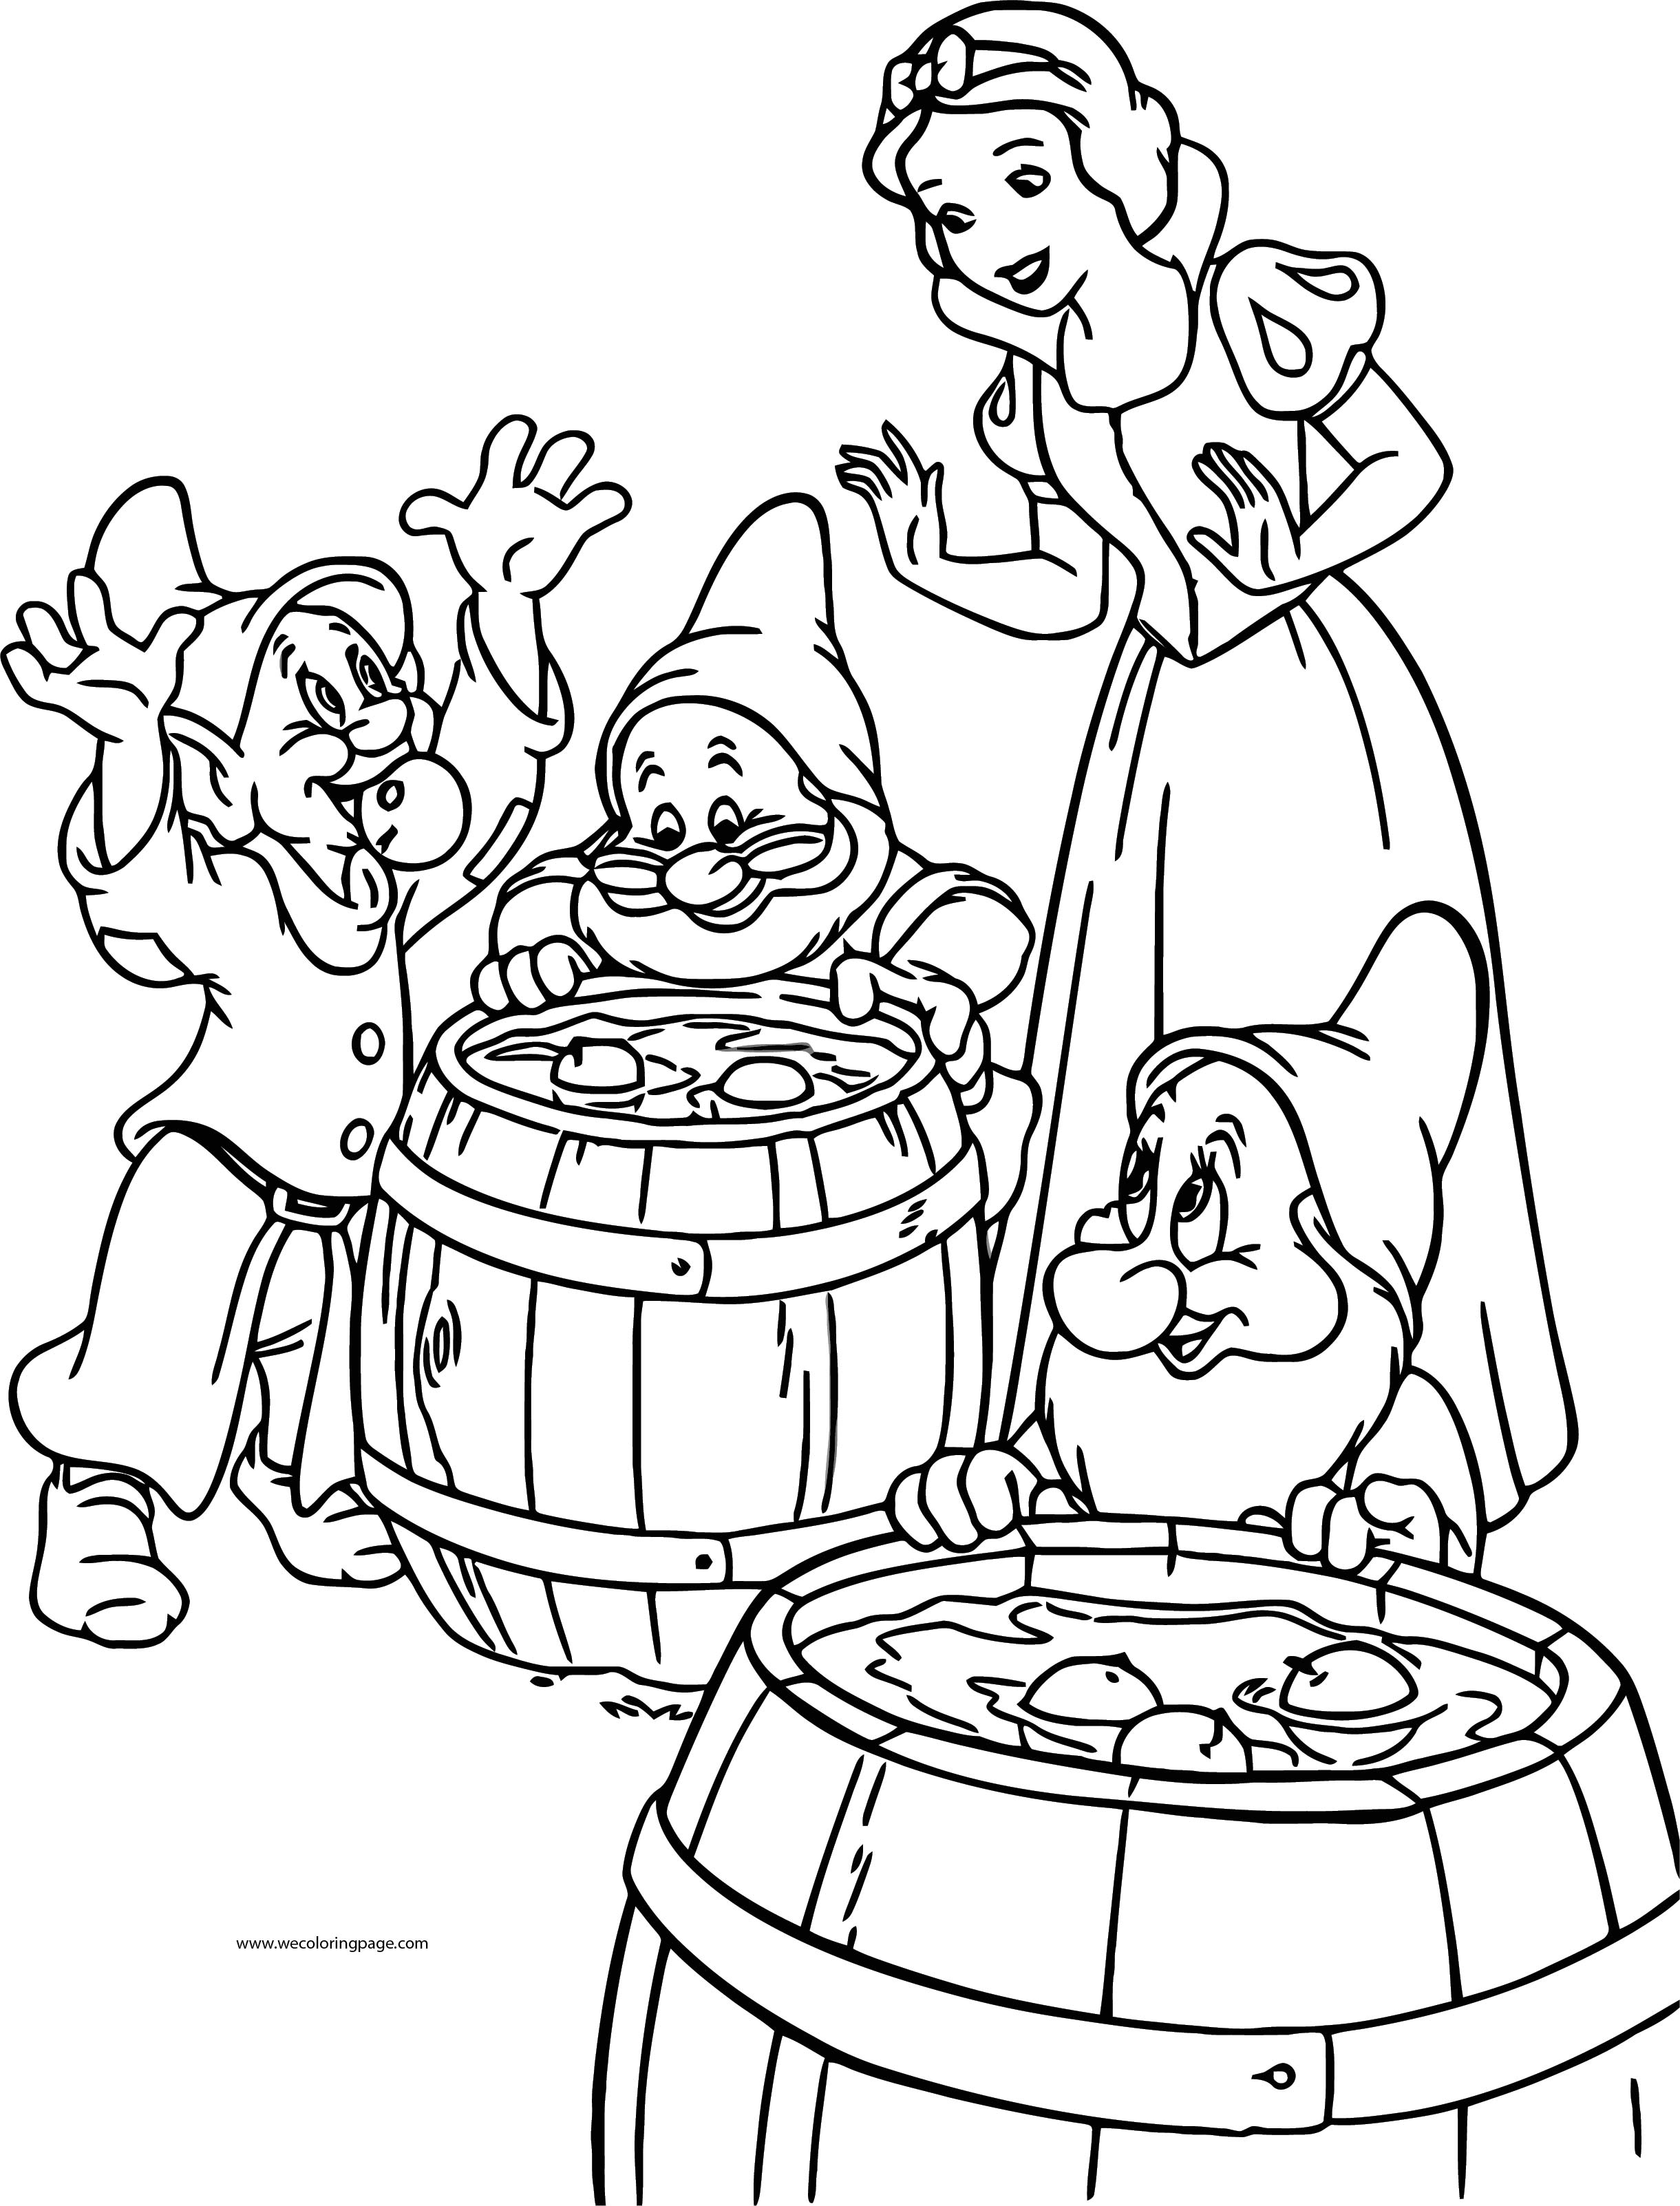 Snow White The Seven Dwarfs Coloring Page 24